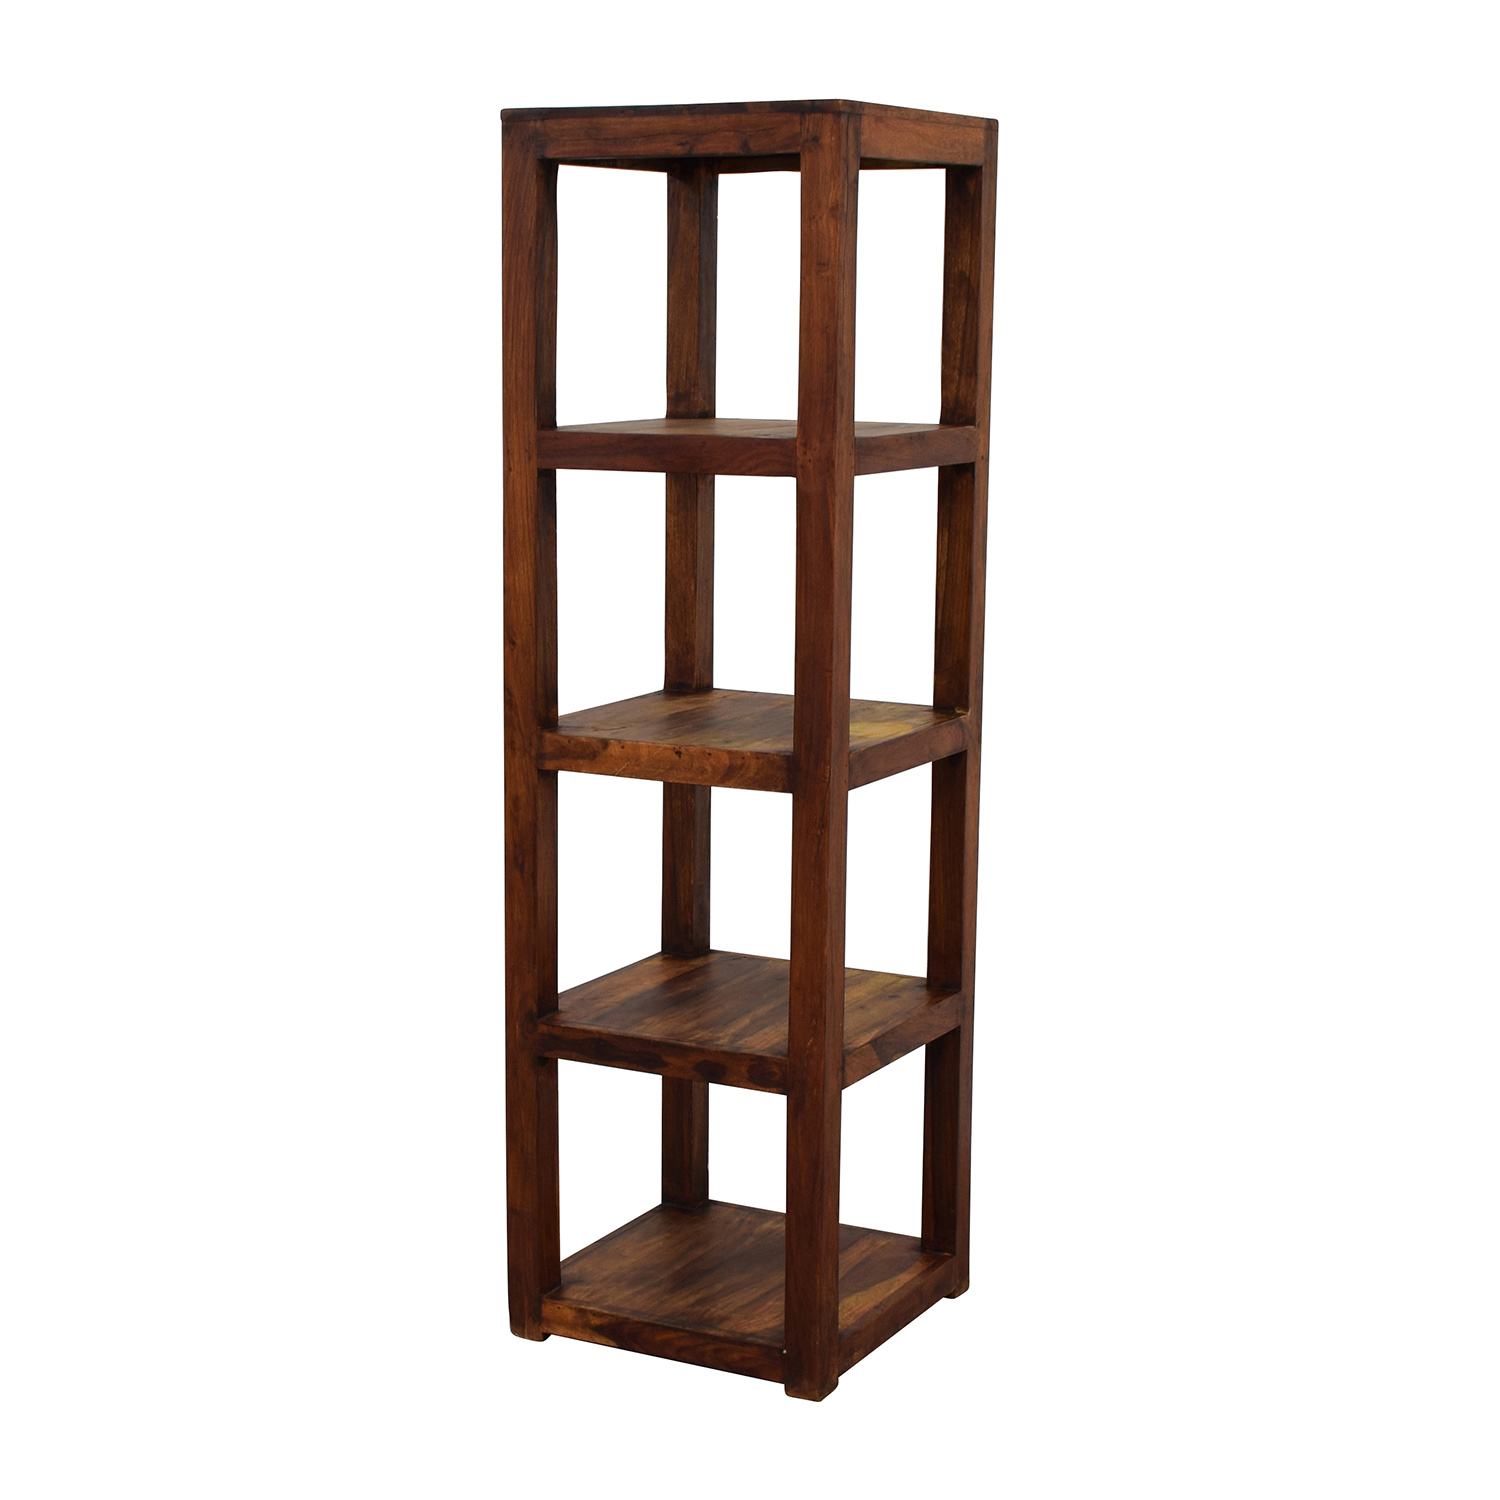 Floating Book Shelf price